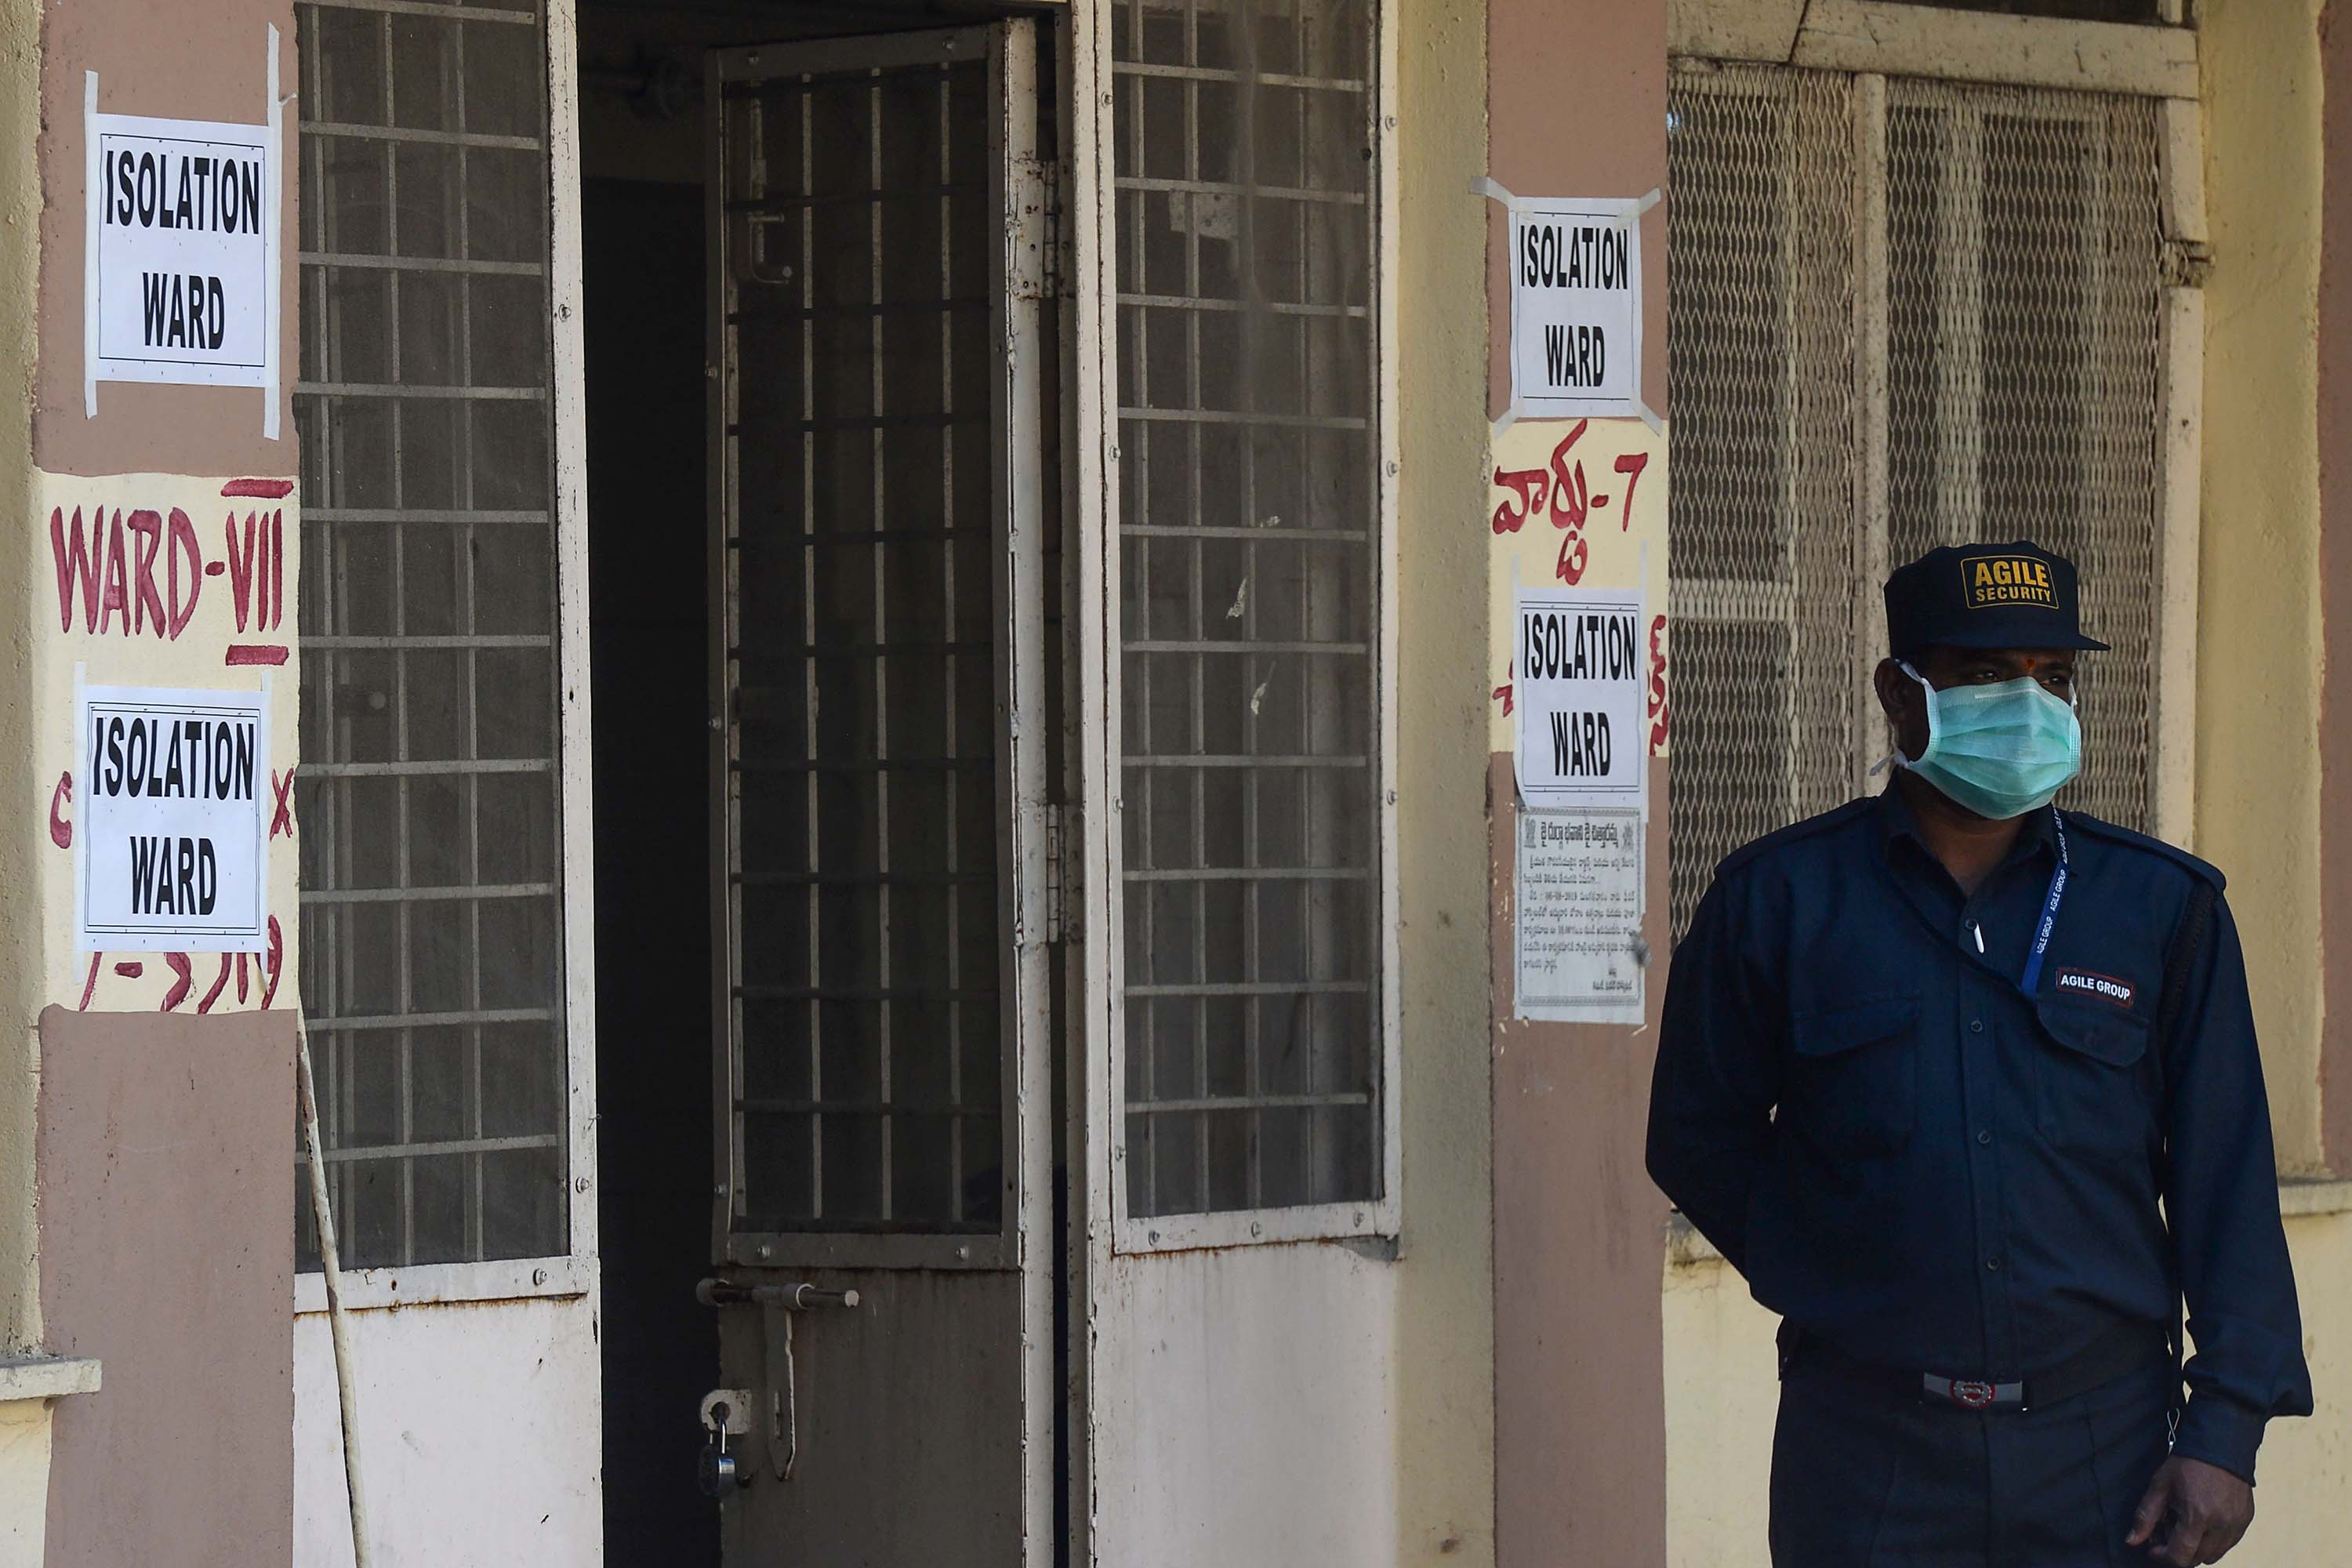 A security guard stands outside a preventive isolation ward for patients arriving from Hong Kong at a government hospital in Hyderabad, India, on January 27